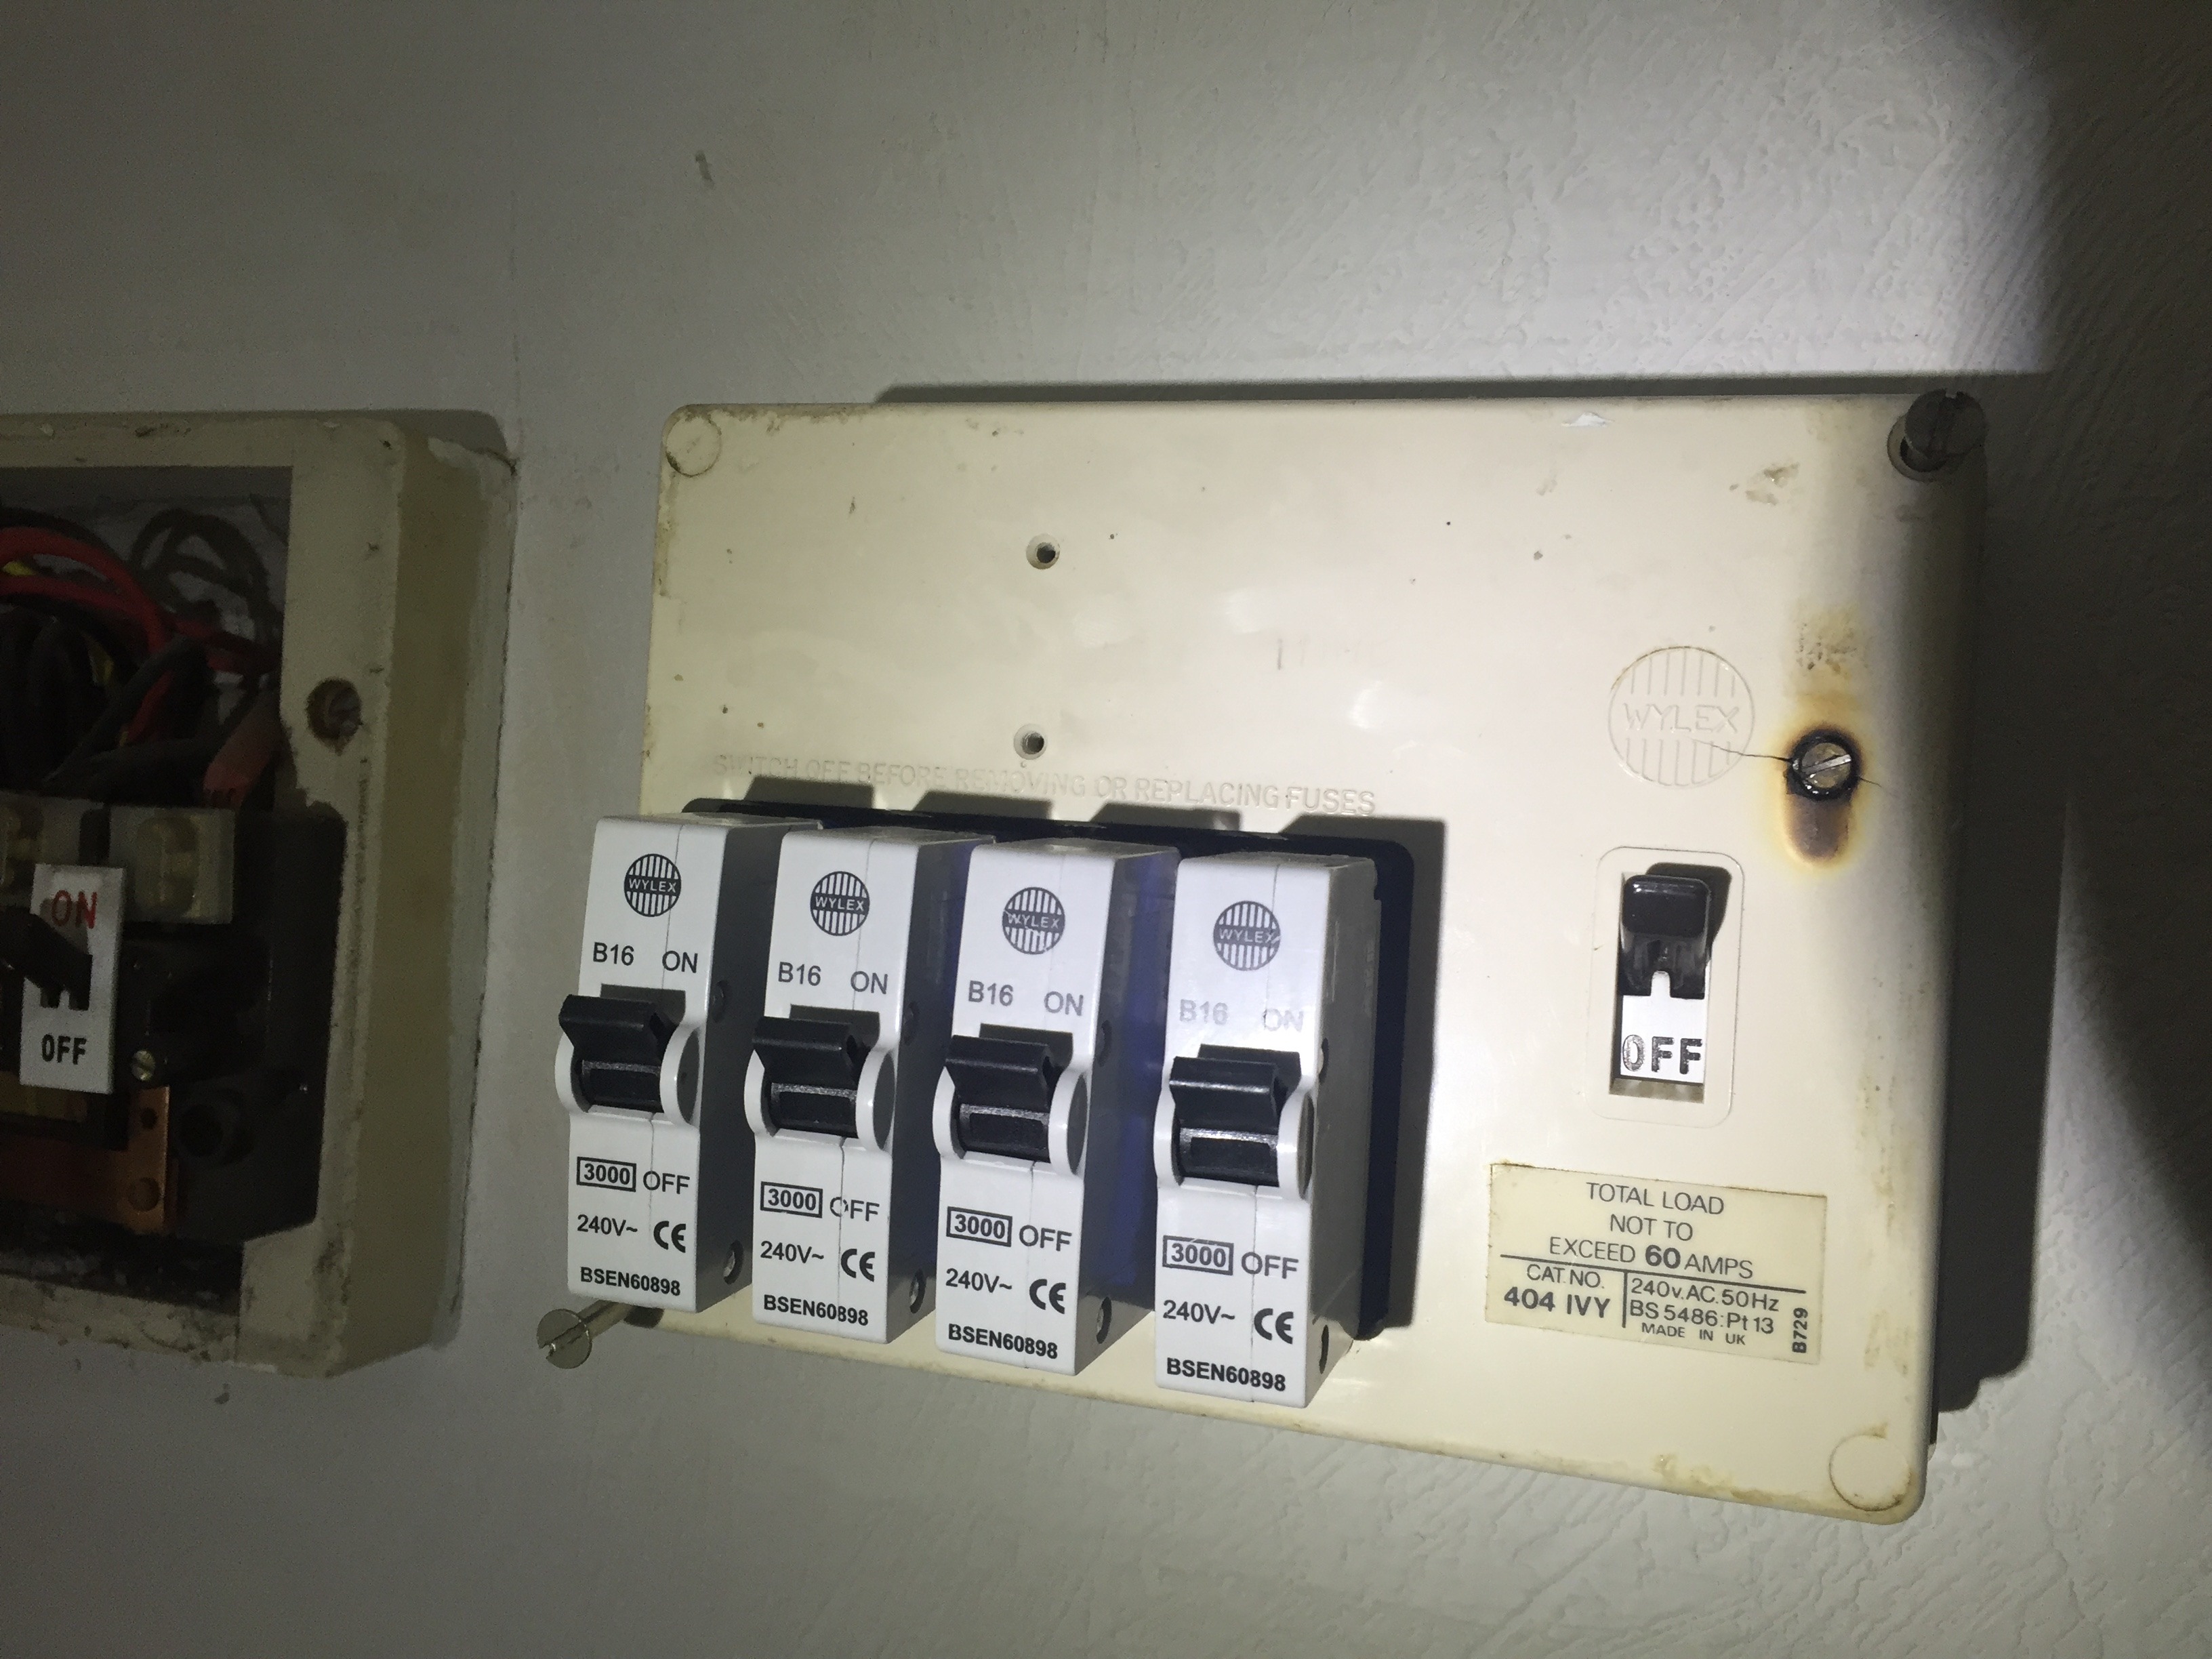 Electrical Test And Inspection Dangerous Wiring Light Switch Spur Very Fuseboard